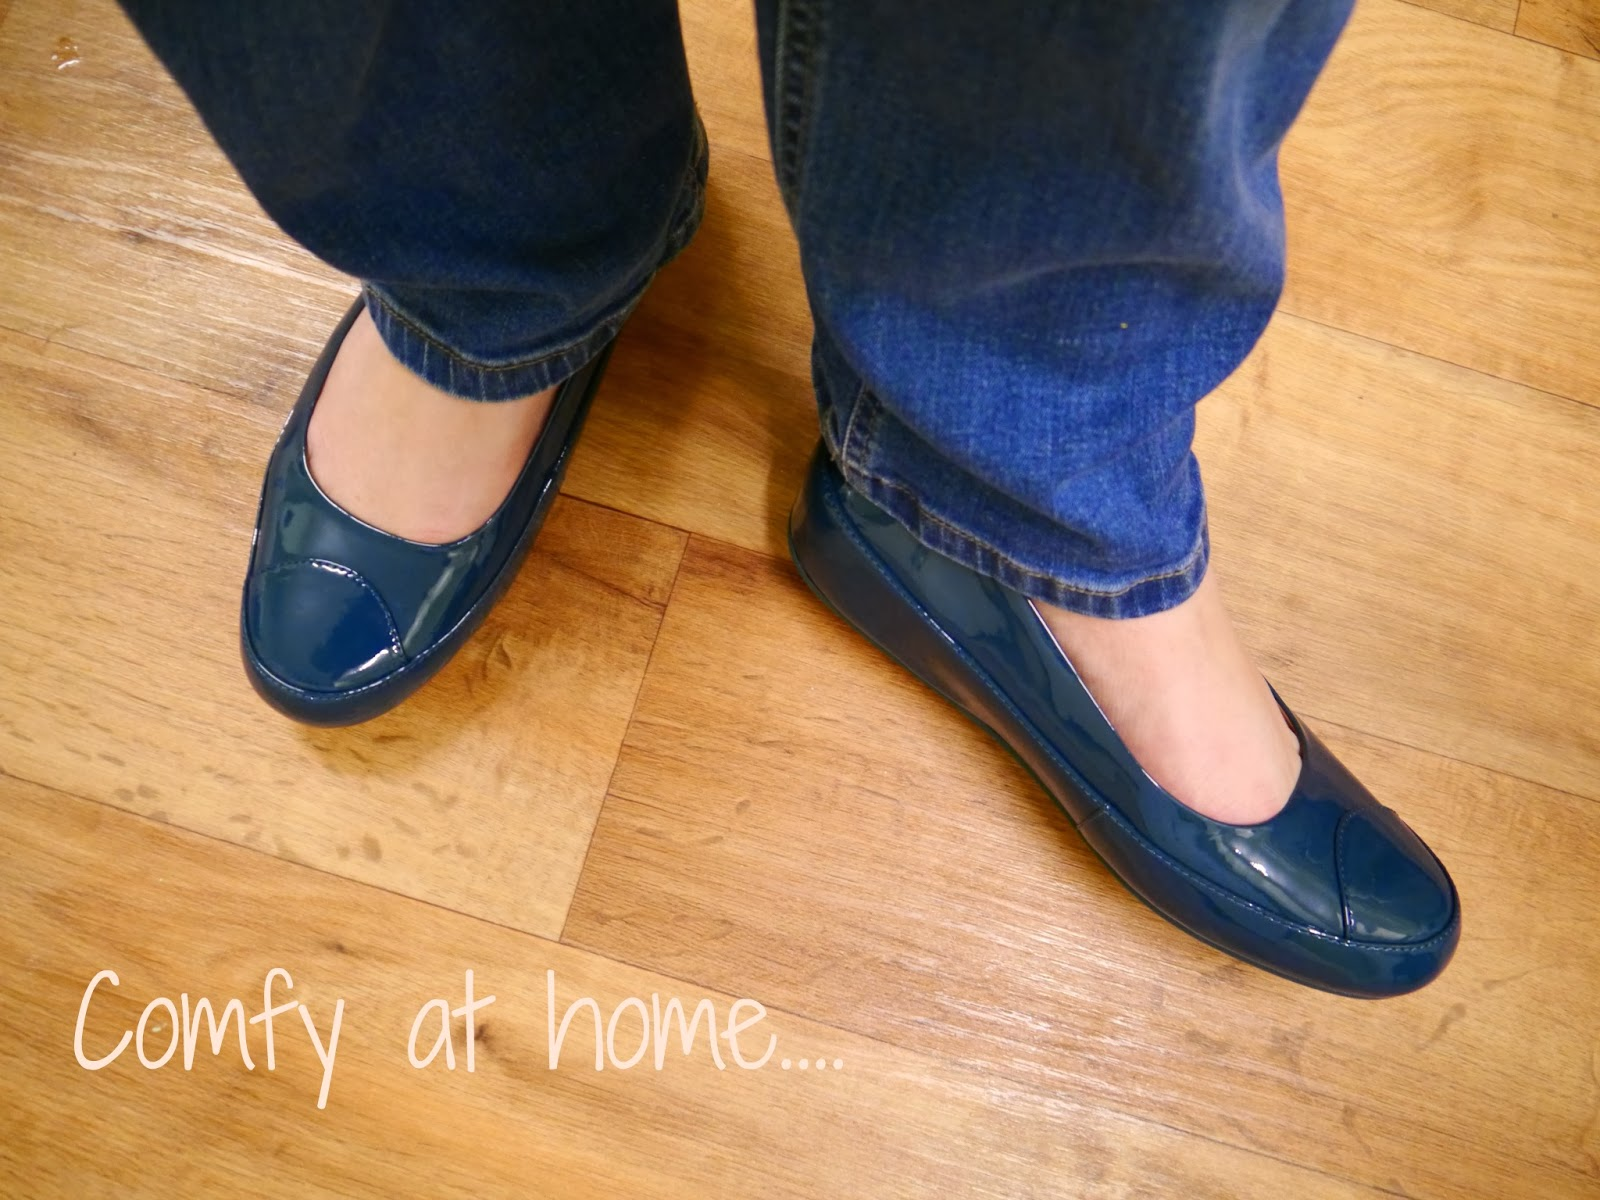 fitflop due ballerina review of related